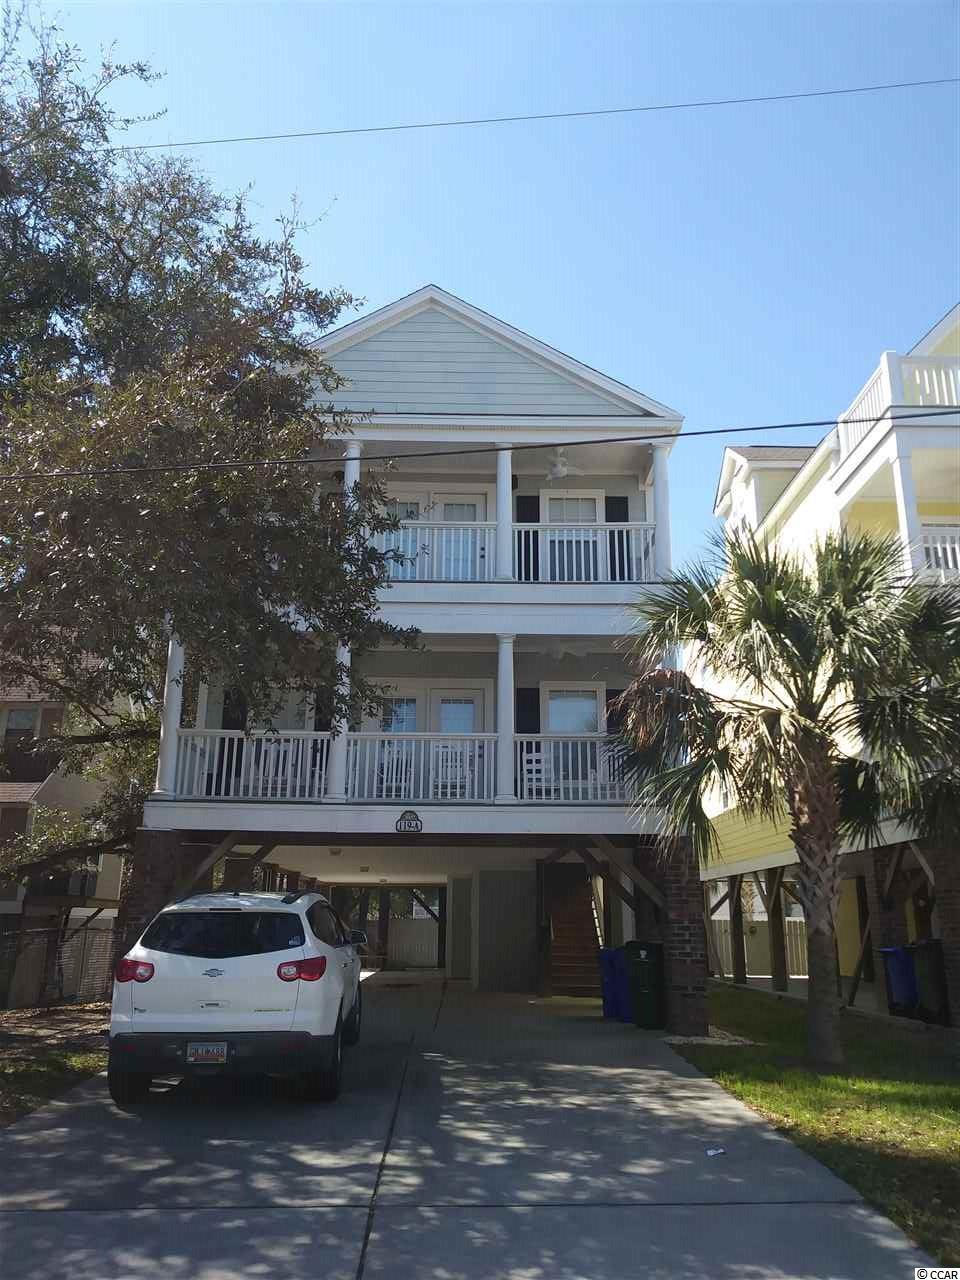 Single Family Home for Sale at 119-A 15th Avenue South 119-A 15th Avenue South Surfside Beach, South Carolina 29575 United States